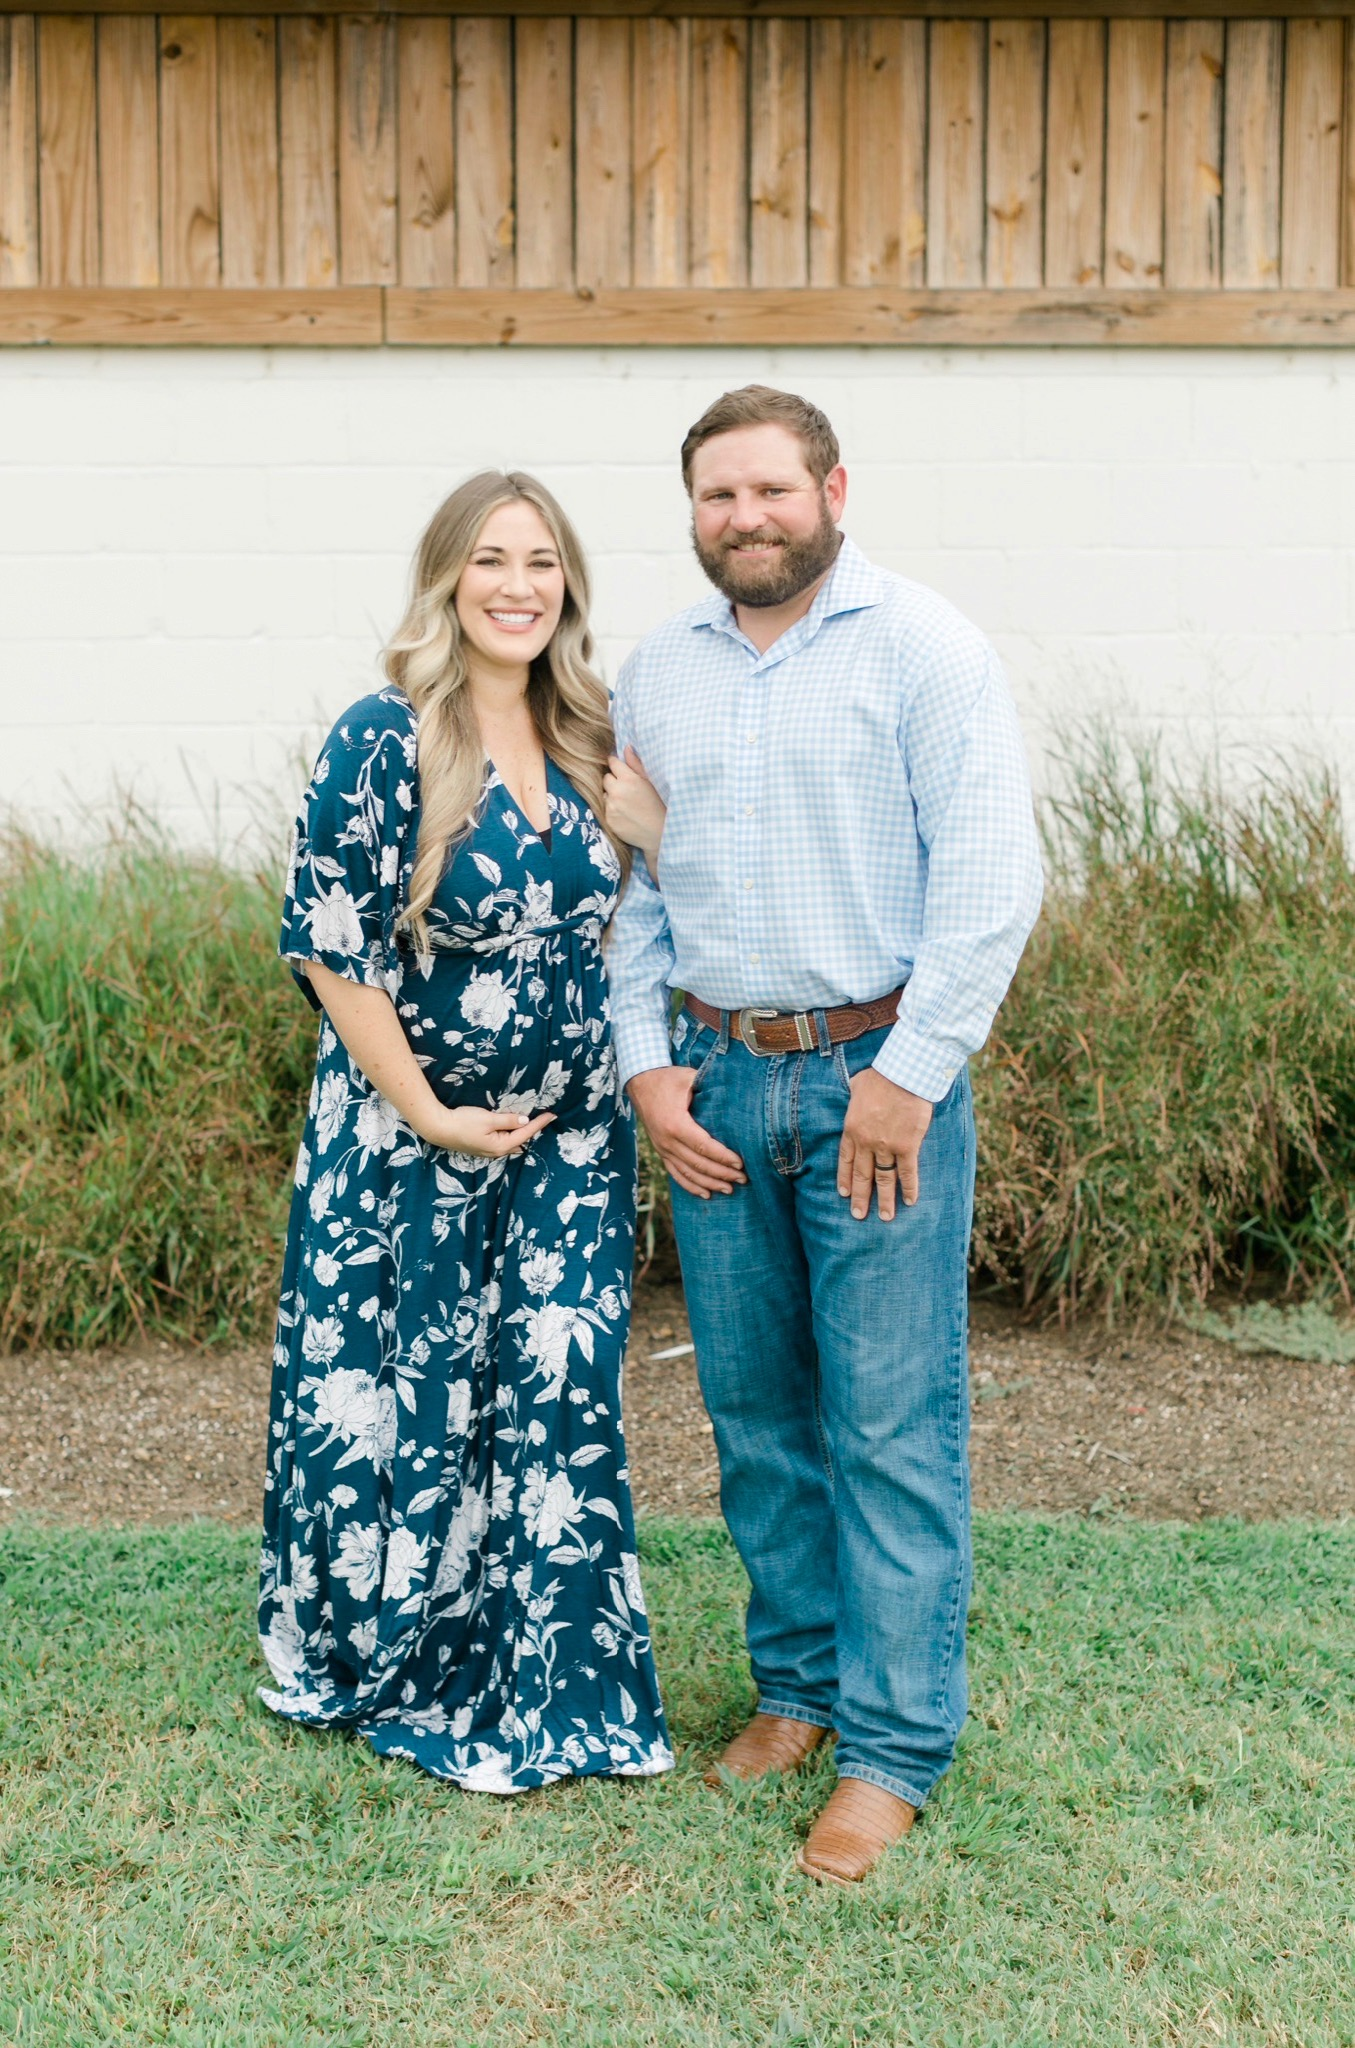 How to Prepare for a New Baby with Erie Insurance, tips featured by top Memphis lifestyle blogger, Walking in Memphis in High Heels.